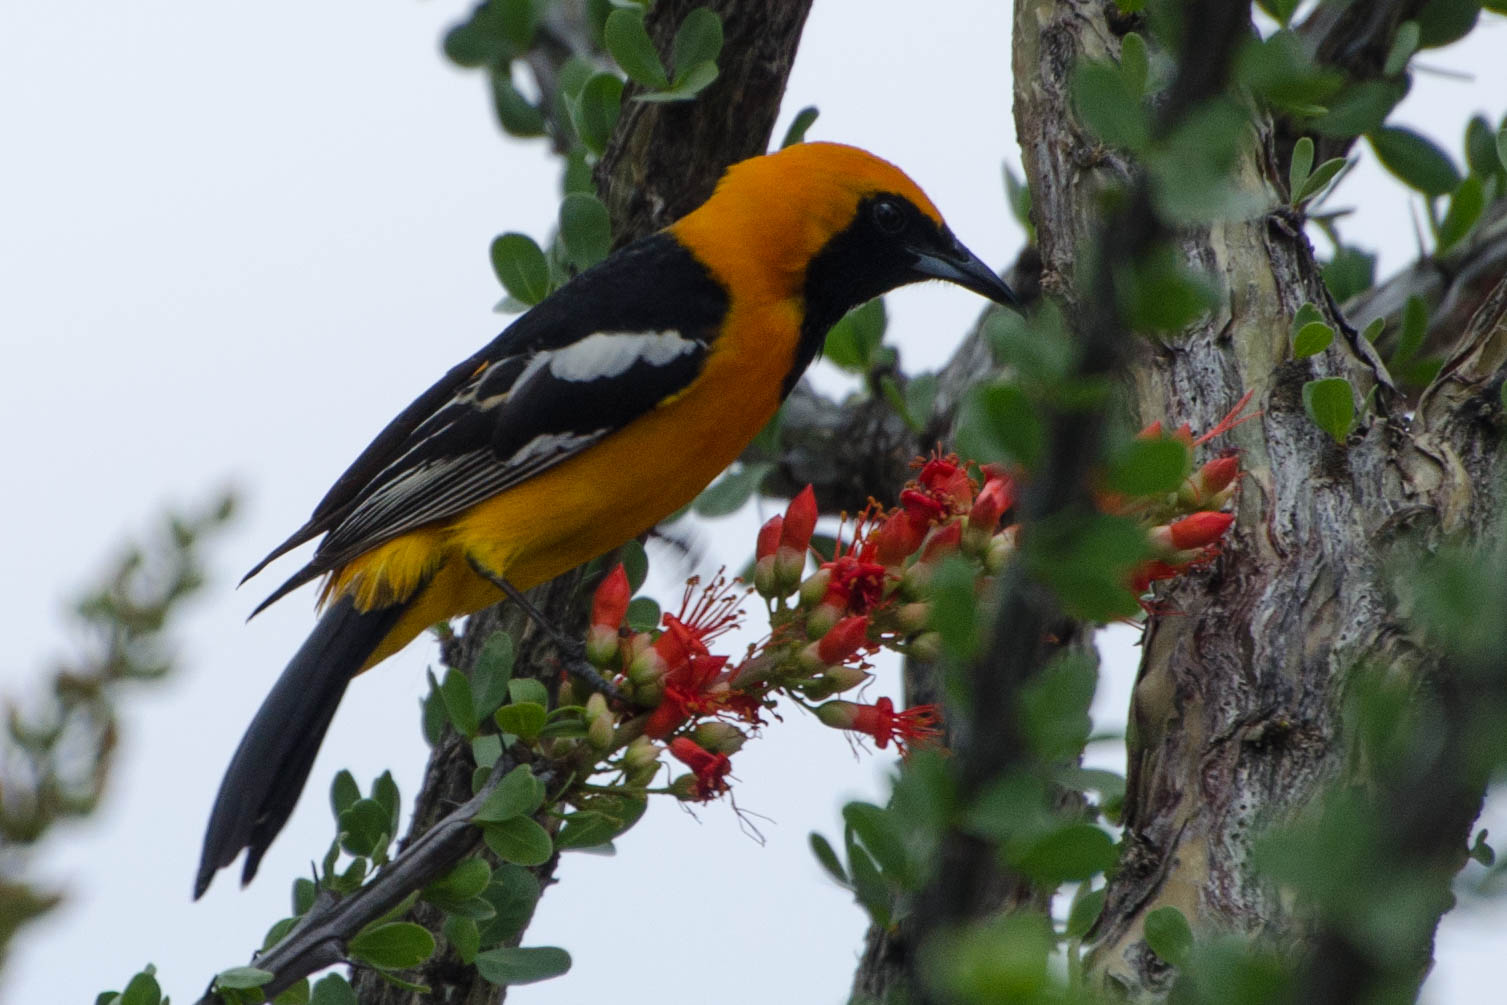 First time seeing an Altamira oriole.